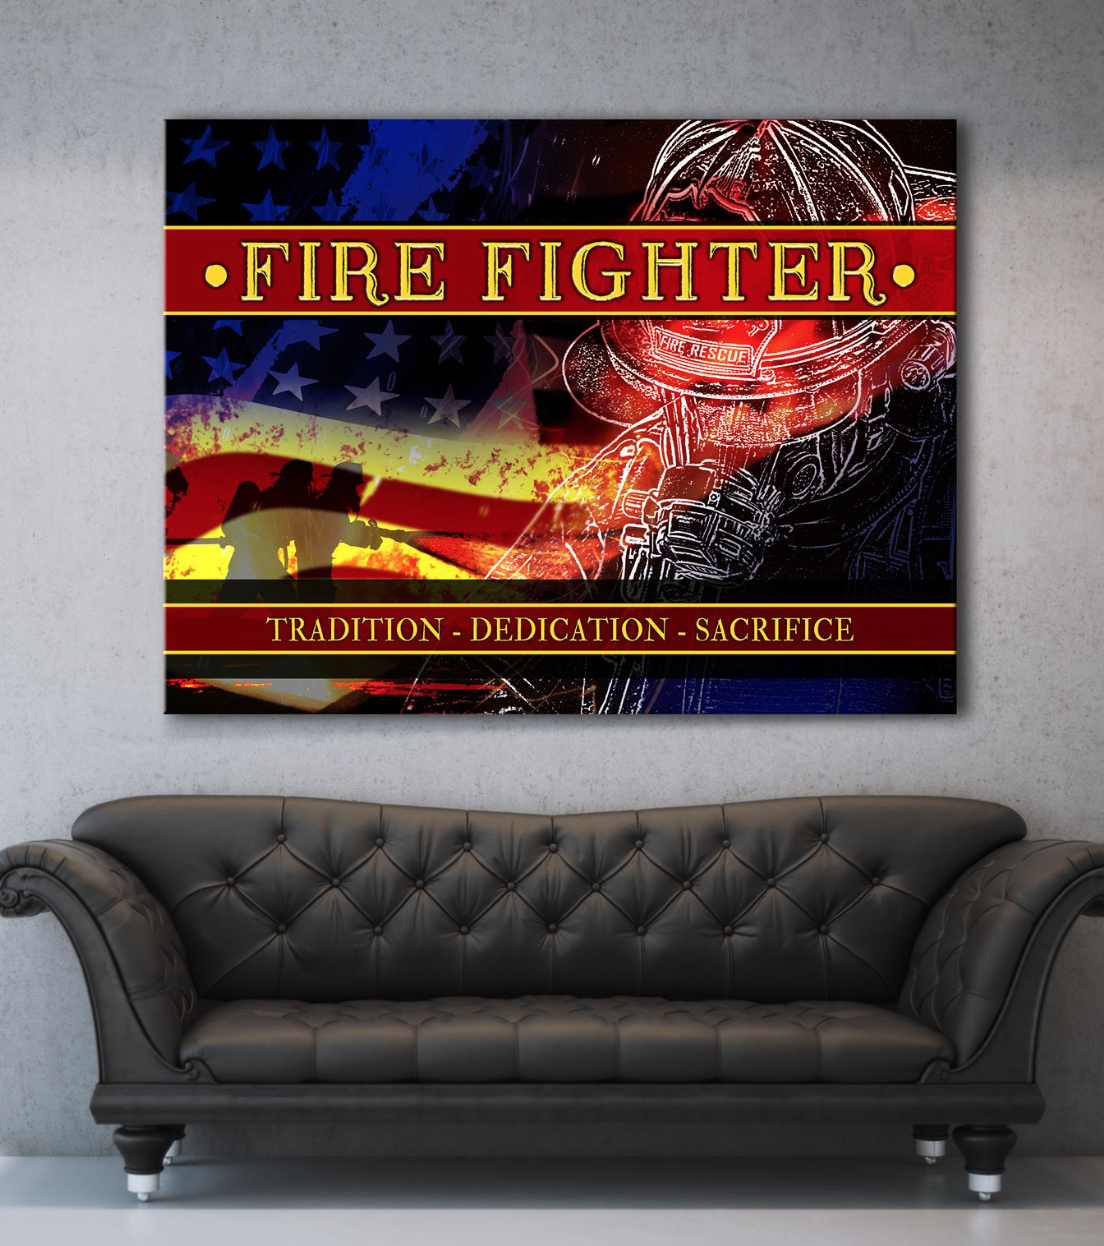 Firefighter Wall Art: Firefighter Dedication (Wood Frame Ready To Hang)